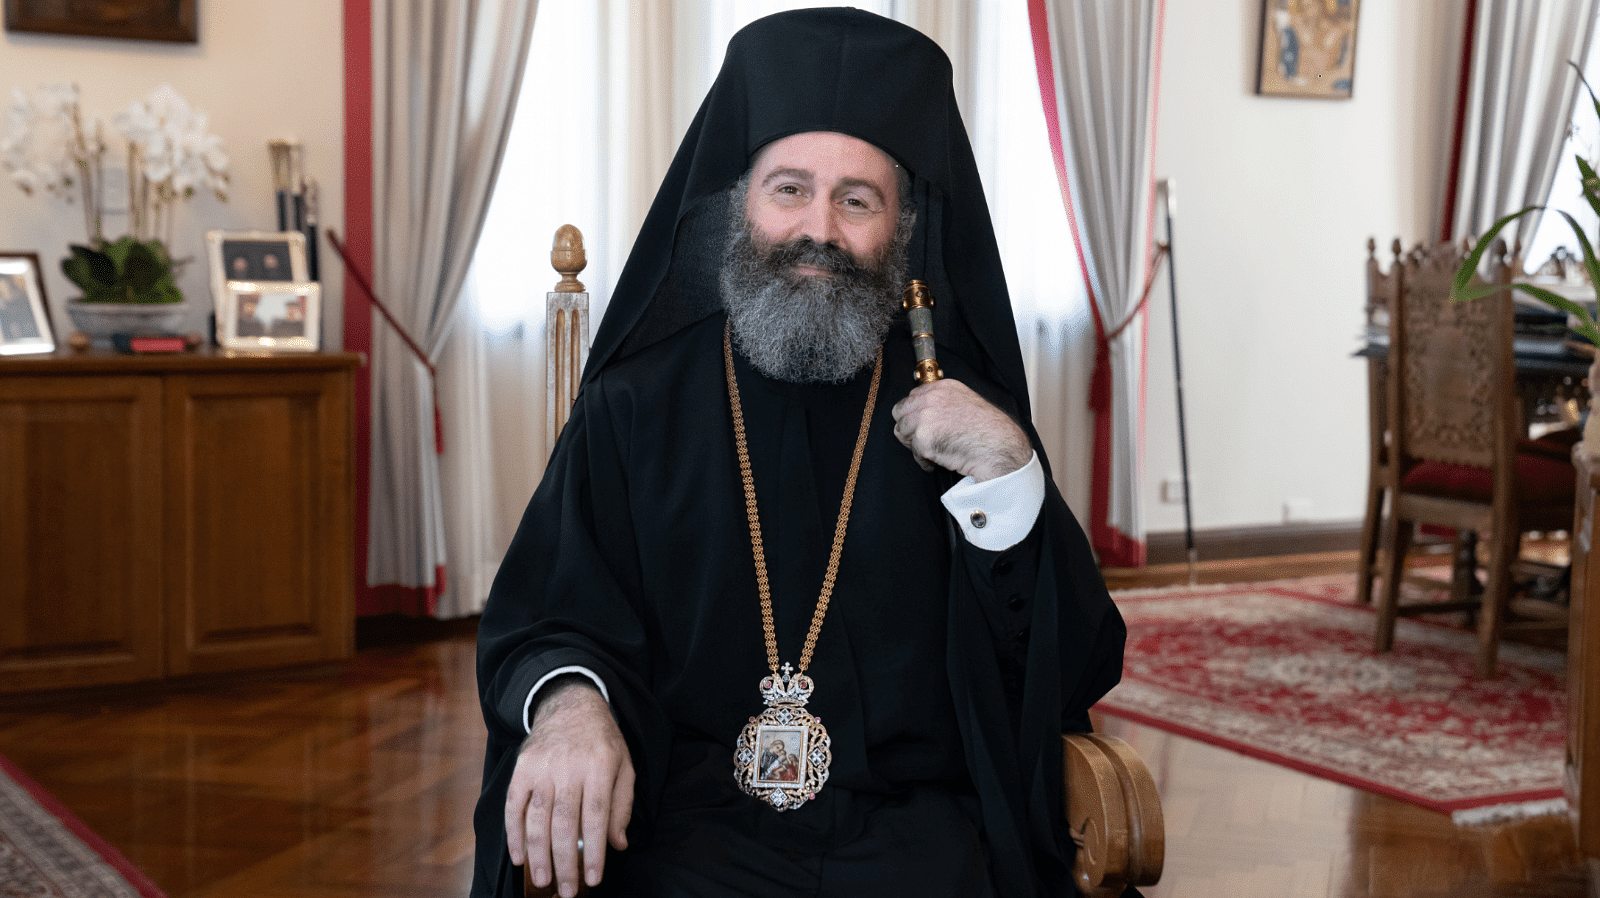 His Eminence Archbishop Makarios of Australia.